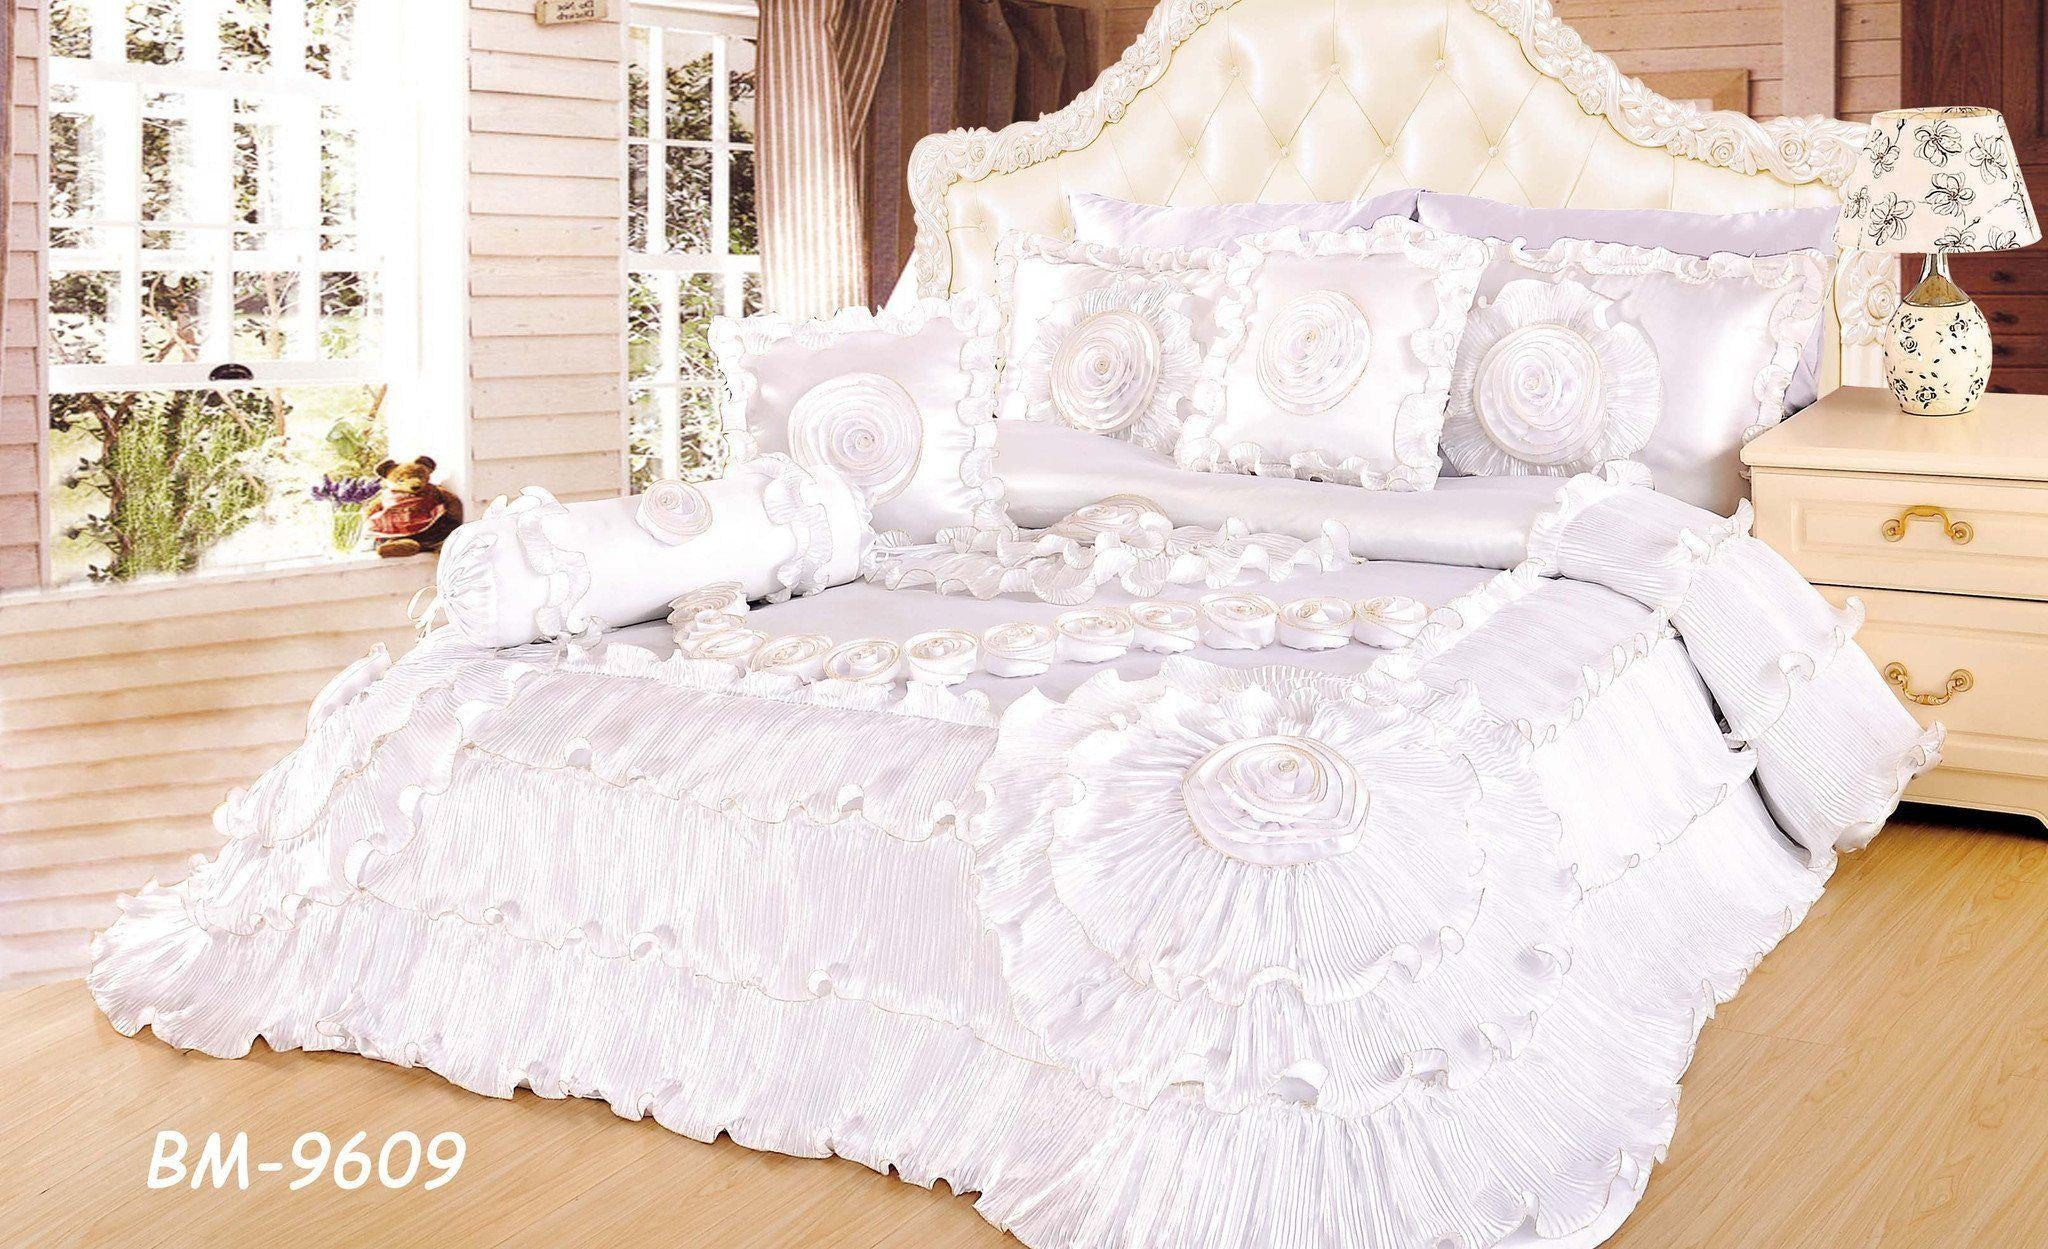 queen size black of ideas bedroom king twin bedding walmart and sets white amazon full comforter